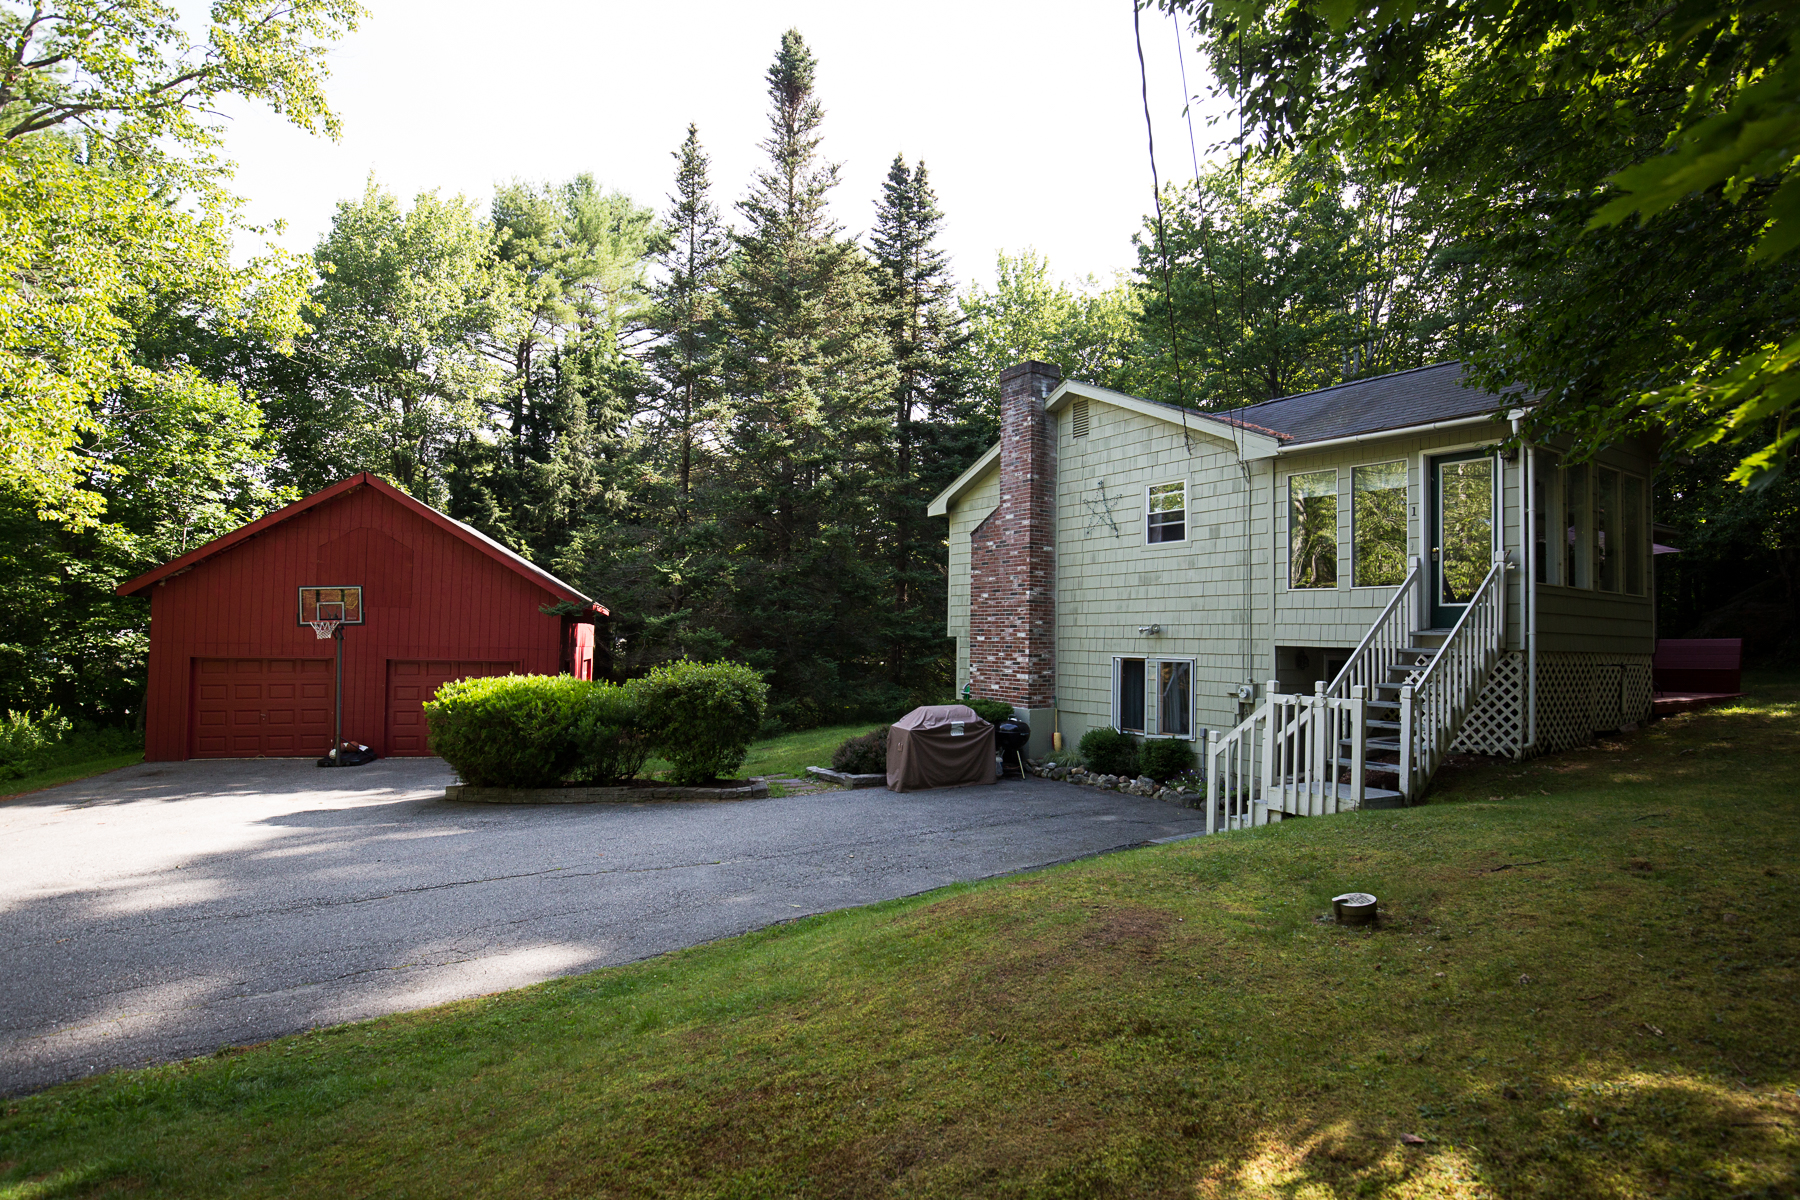 Single Family Home for Sale at 1 Pettengil Freeport, Maine 04032 United States